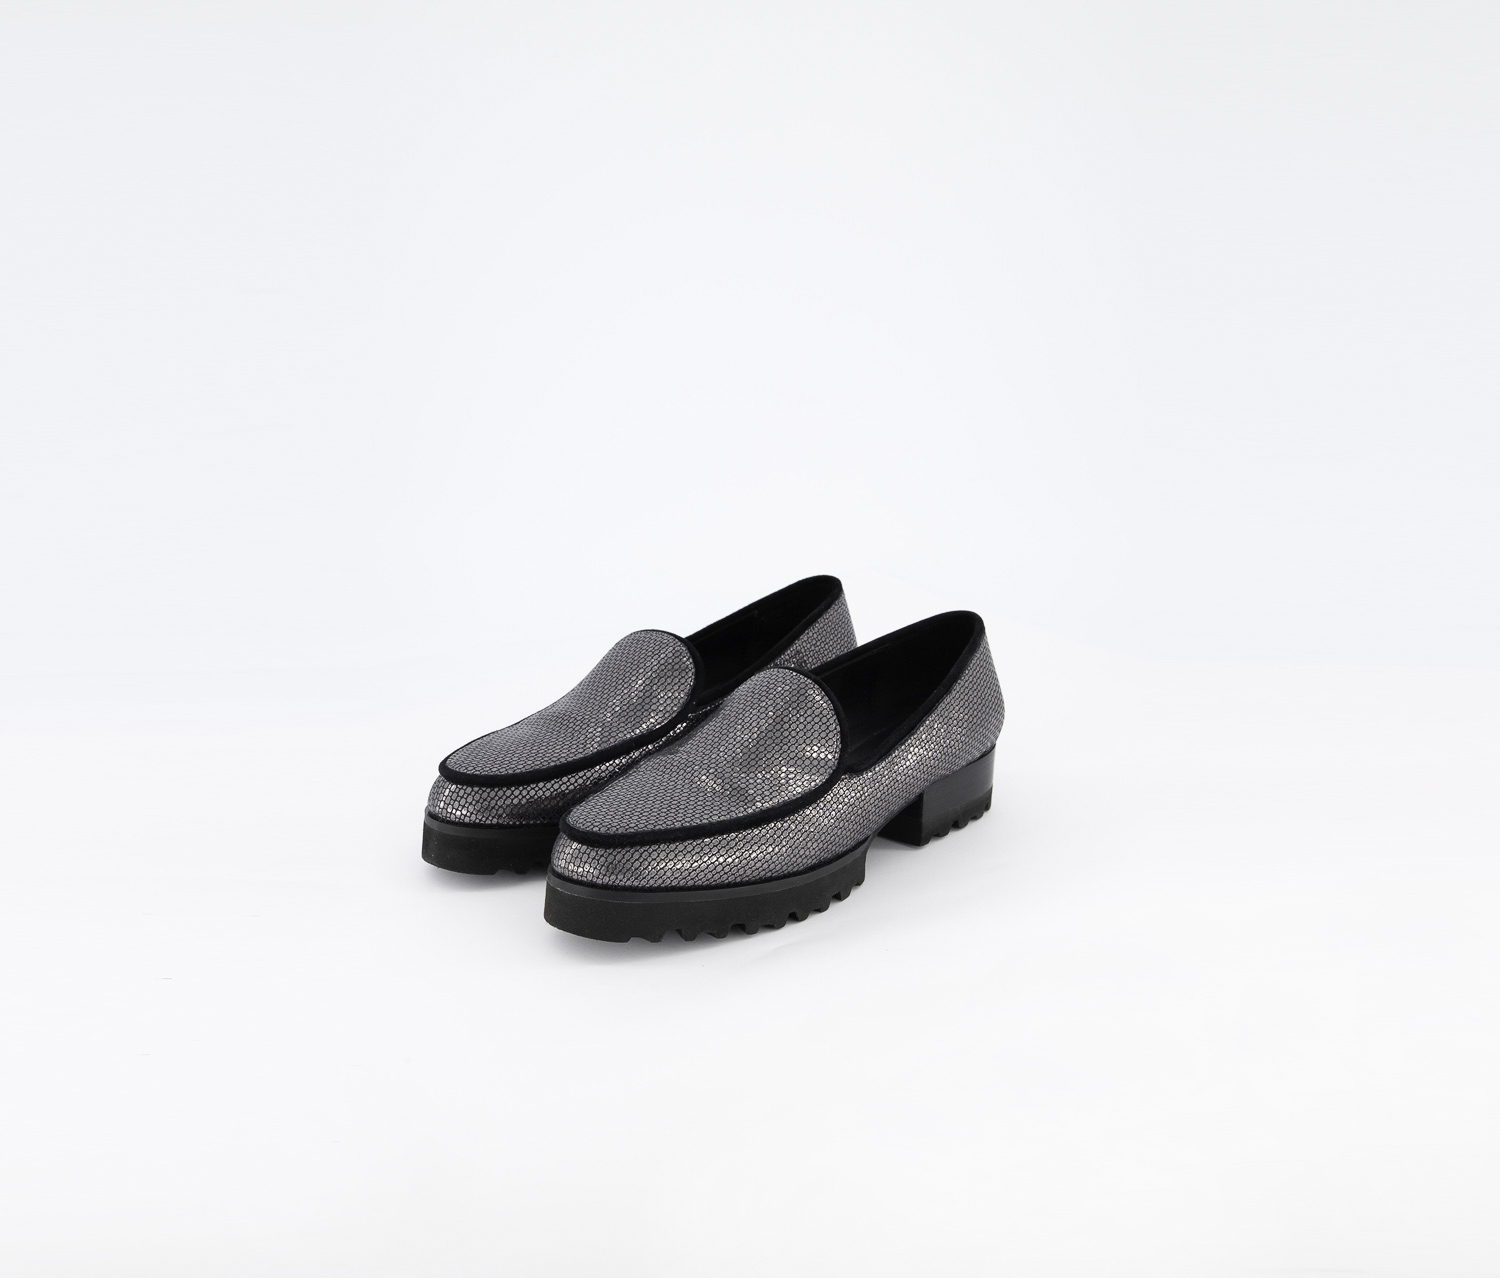 Women's Elen Loafer Casual Shoes, Carbon